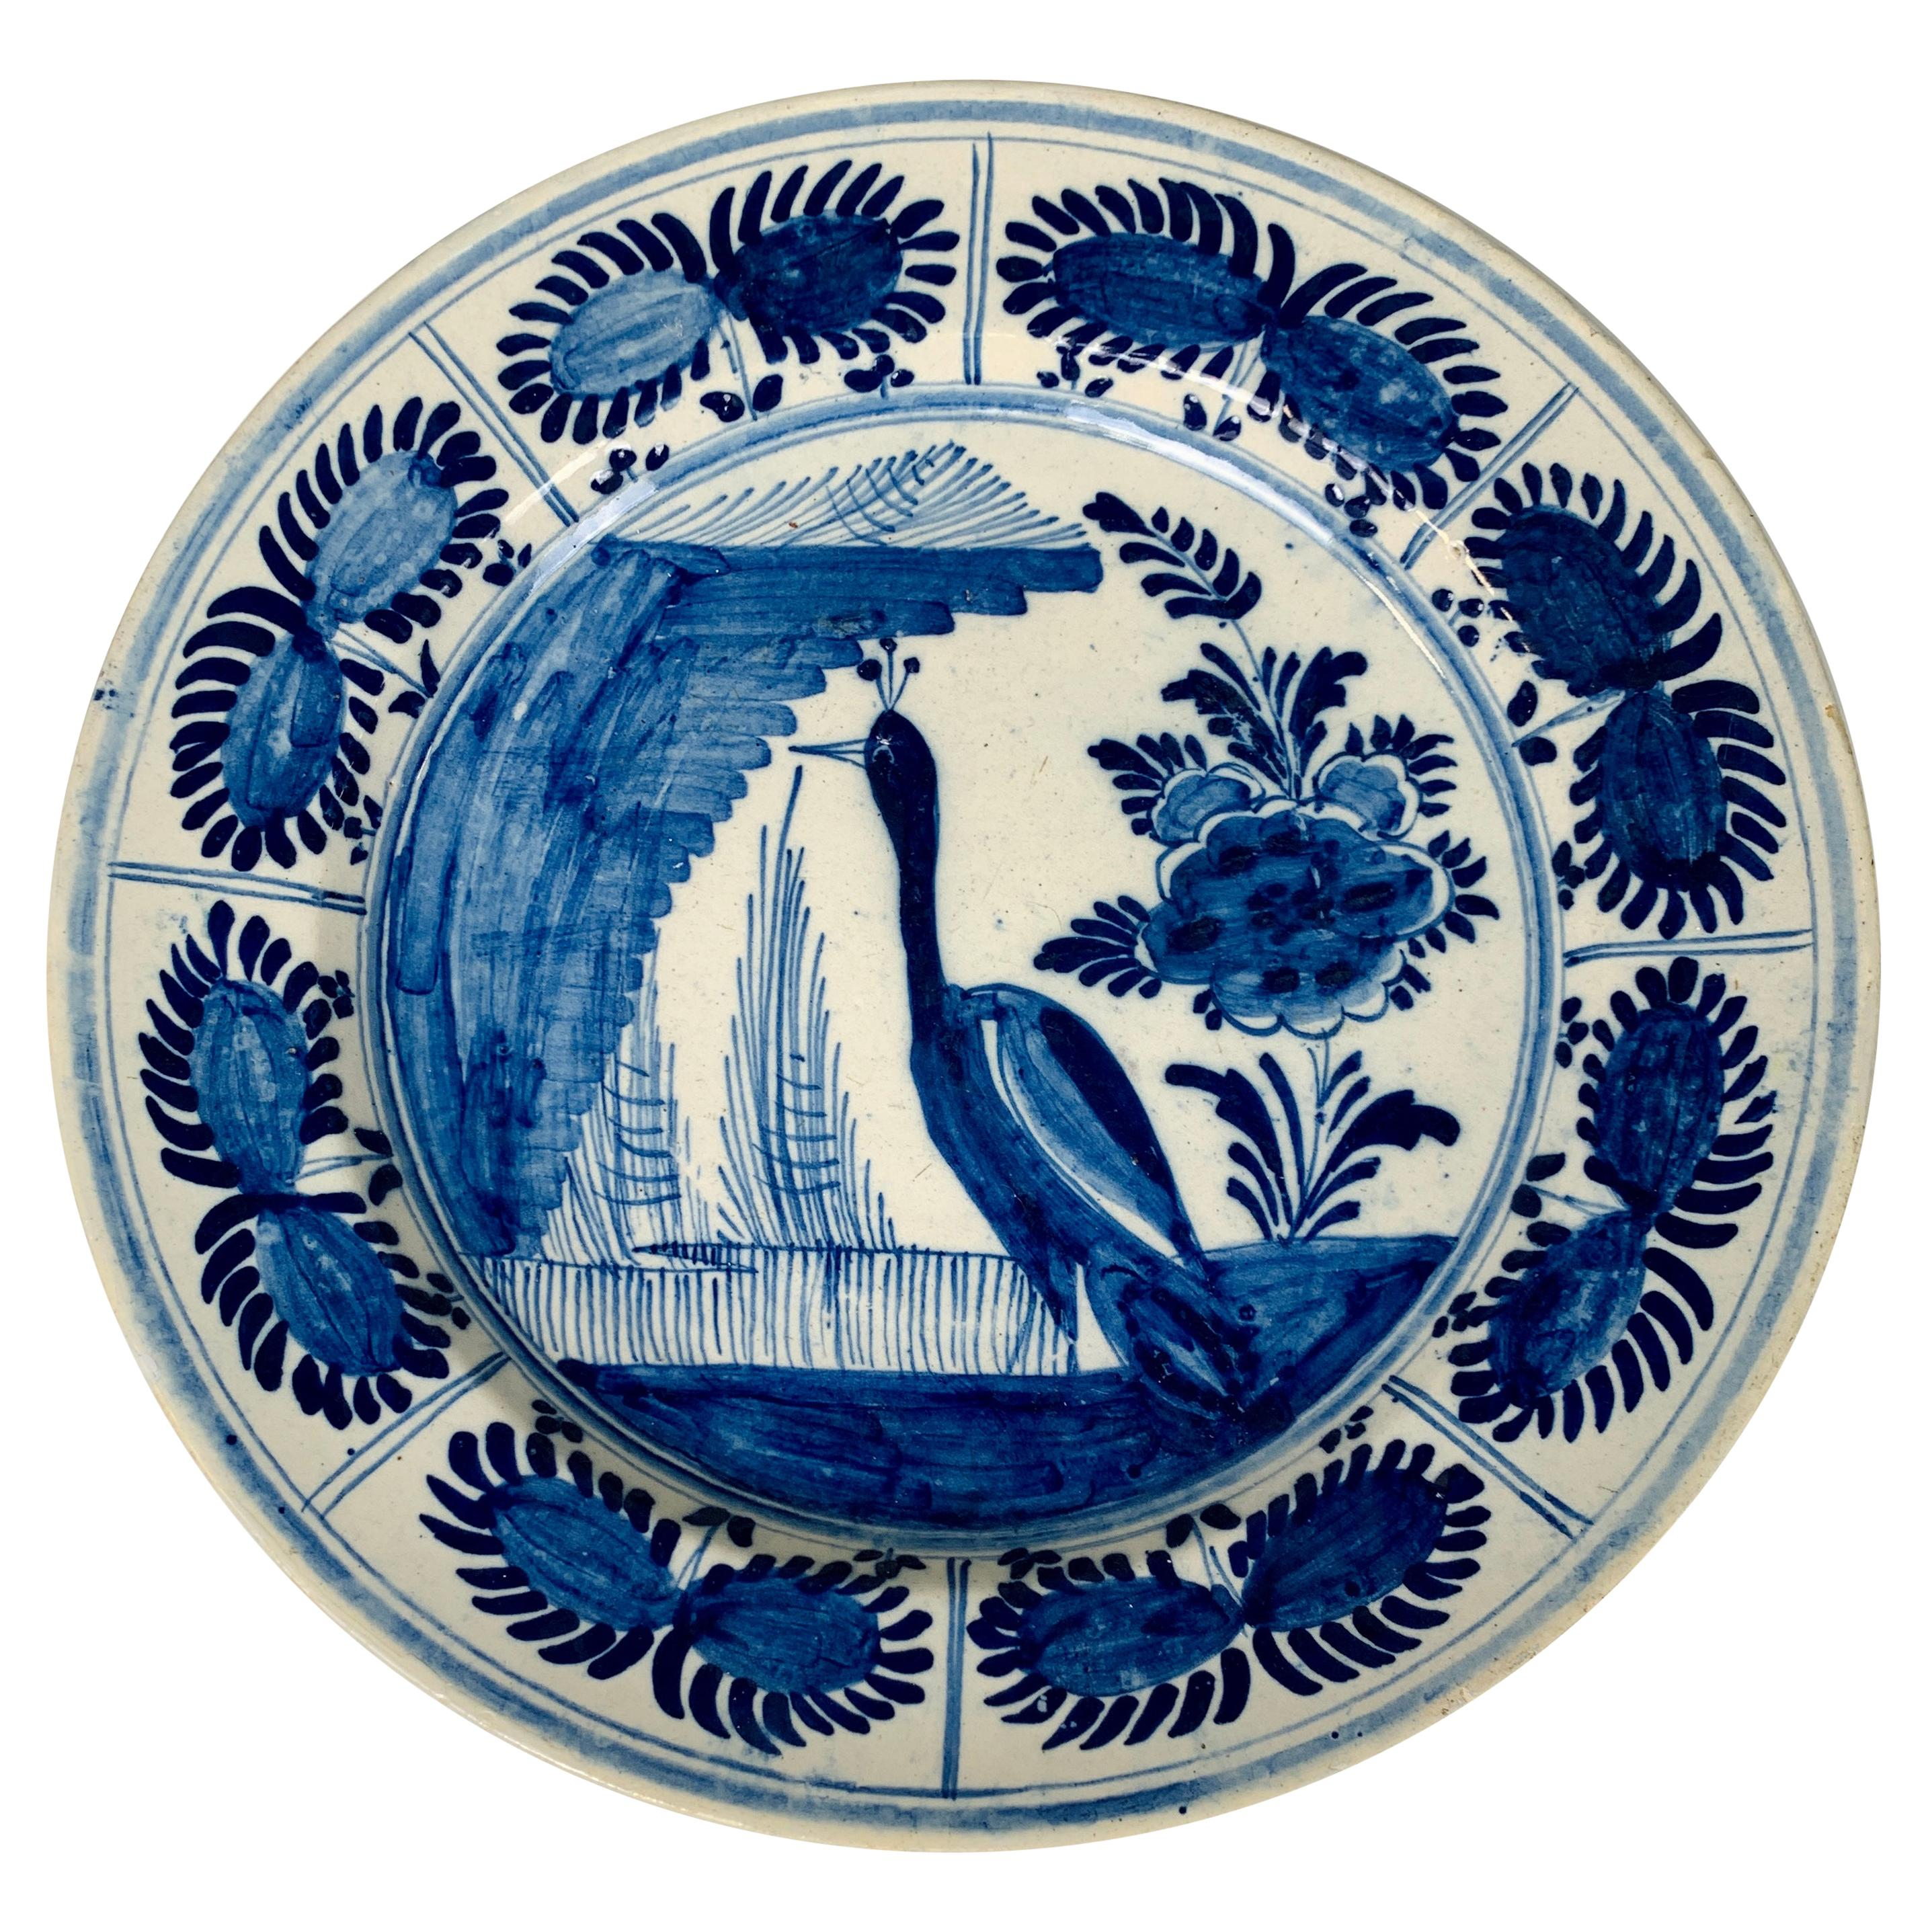 Blue and White Dutch Delft Charger Hand-Painted in the 18th Century